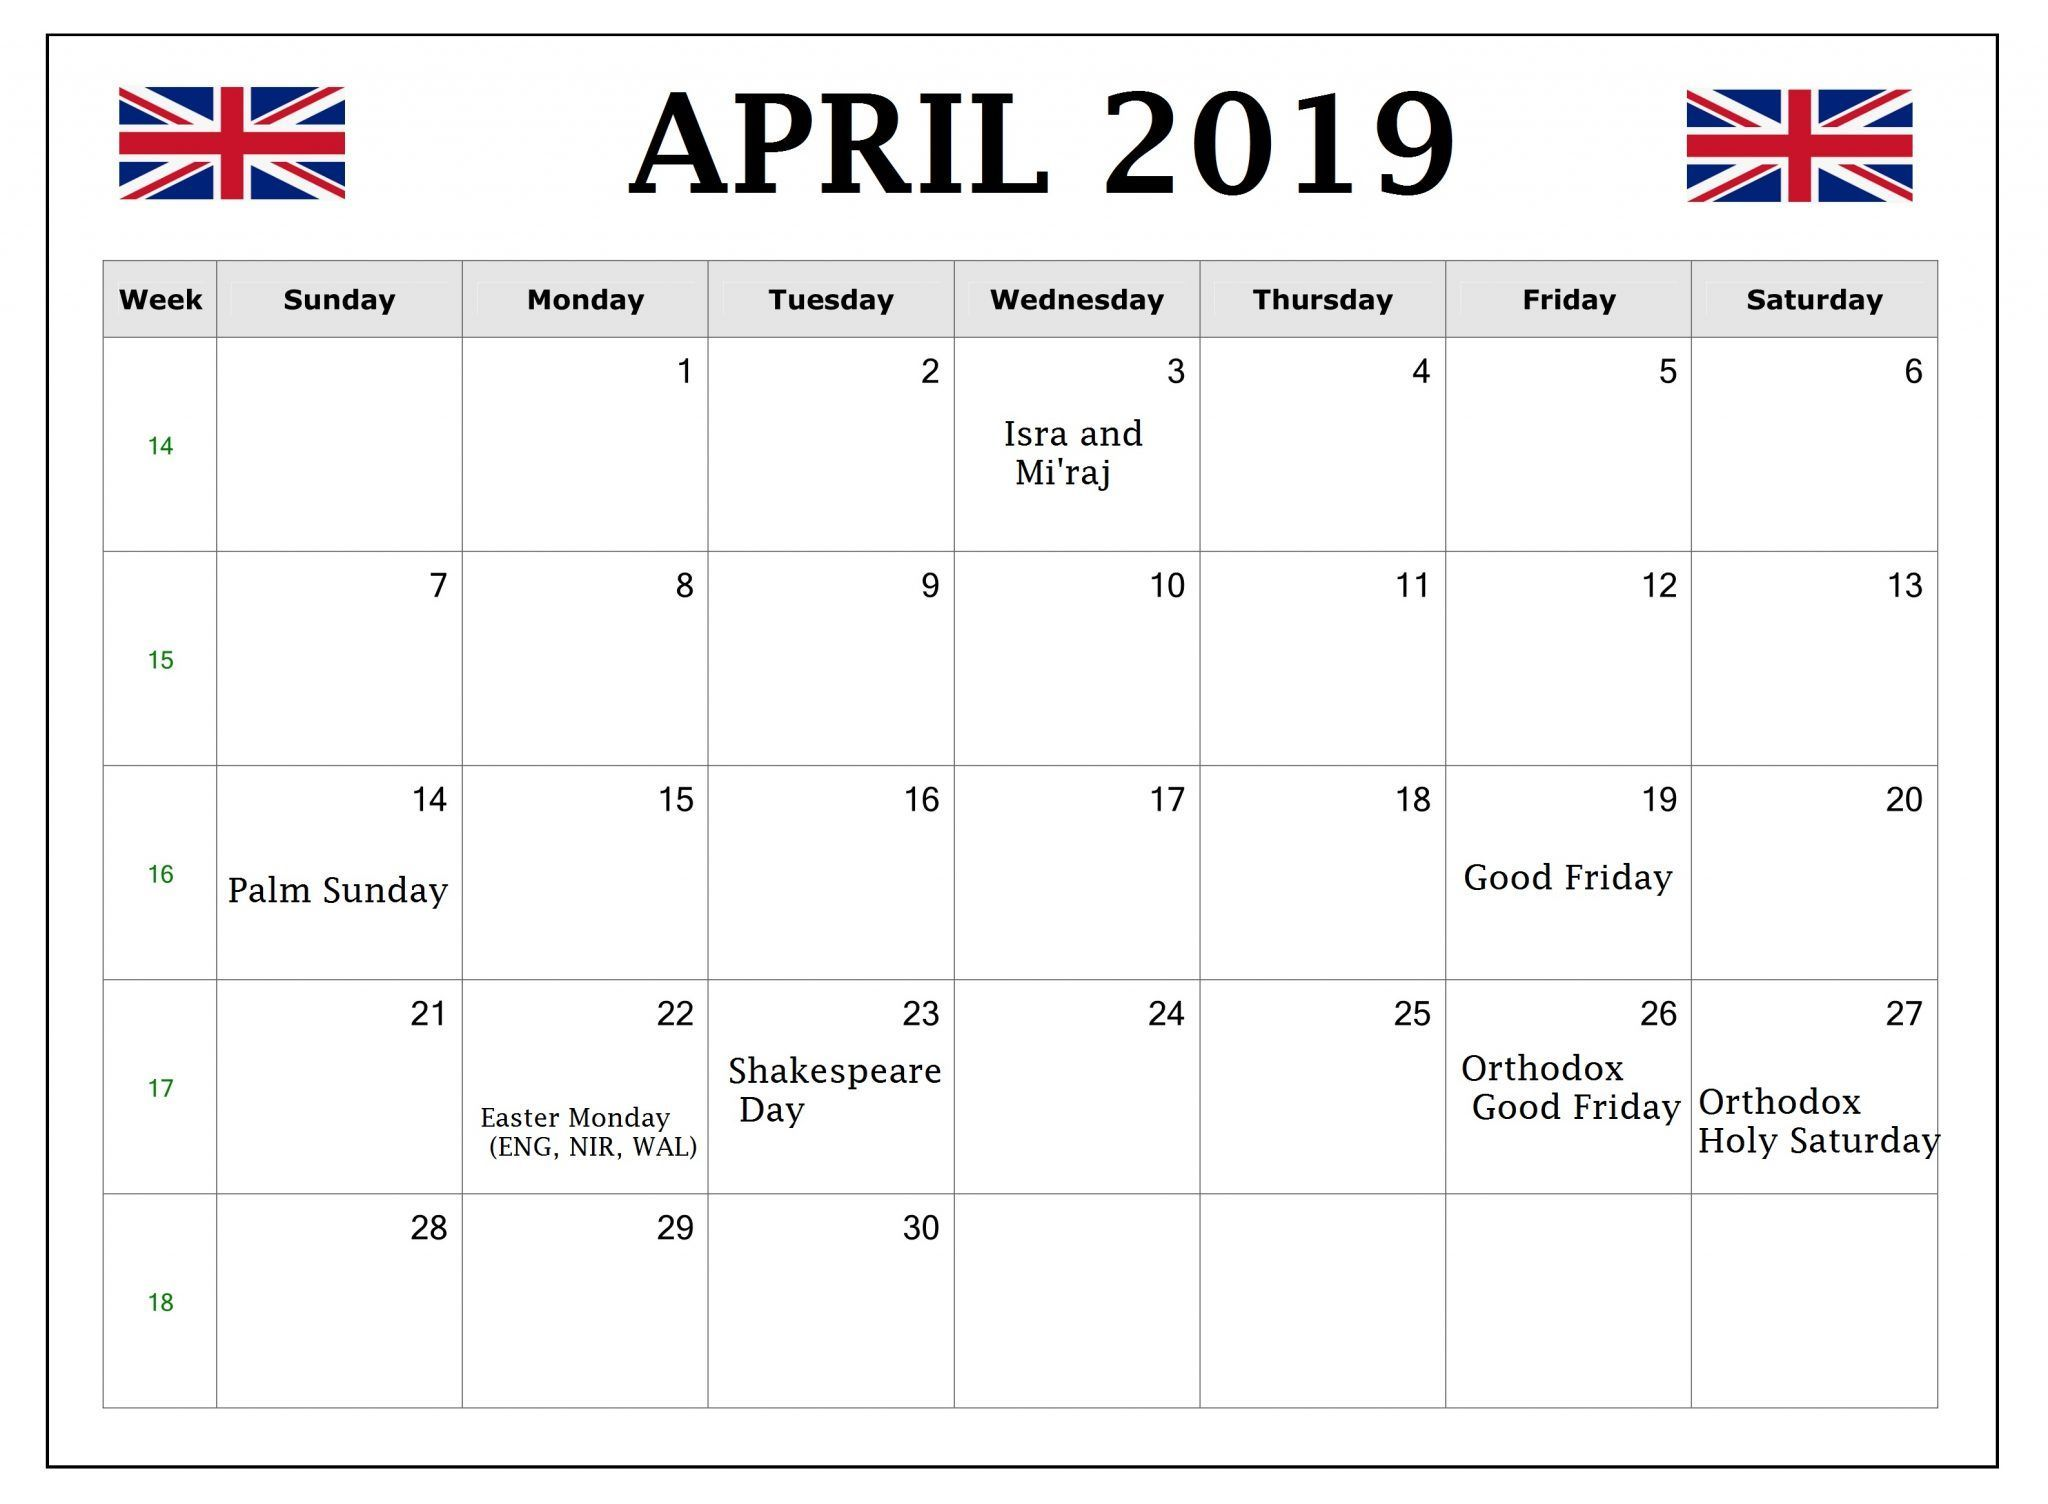 April 2019 Calendar Uk Calendar Uk 2019 Calendar Holiday Calendar